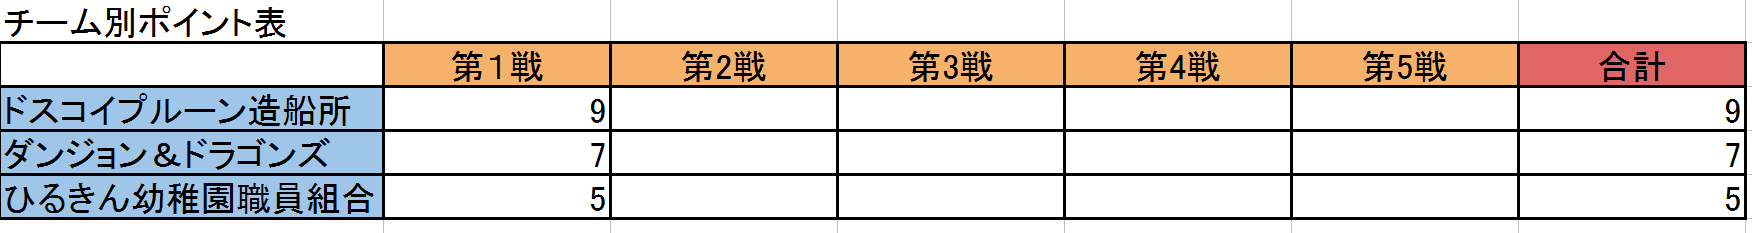 20141102220850ad1.png